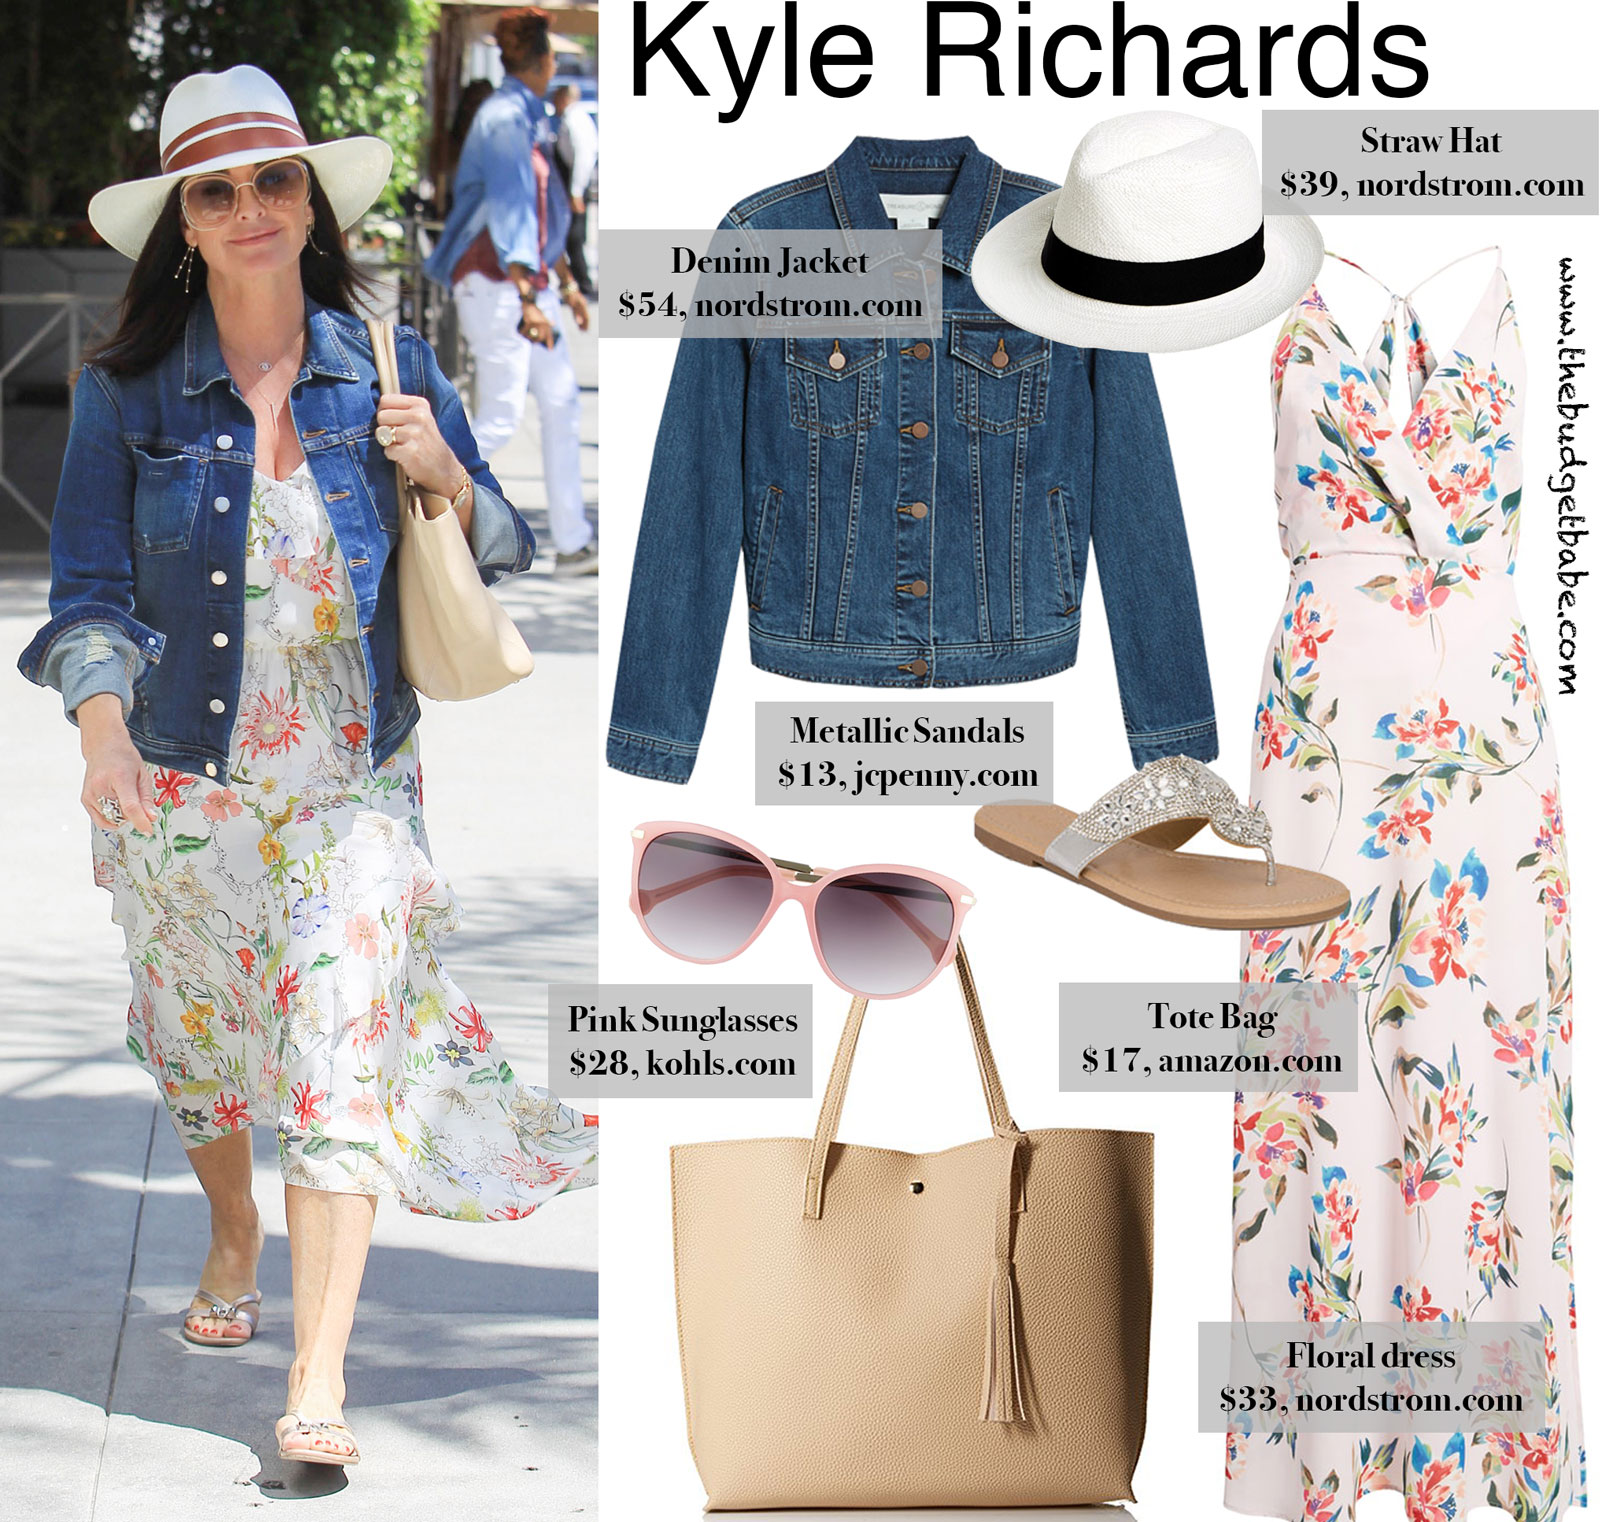 Kyle Richards' Floral Dress Look for Less